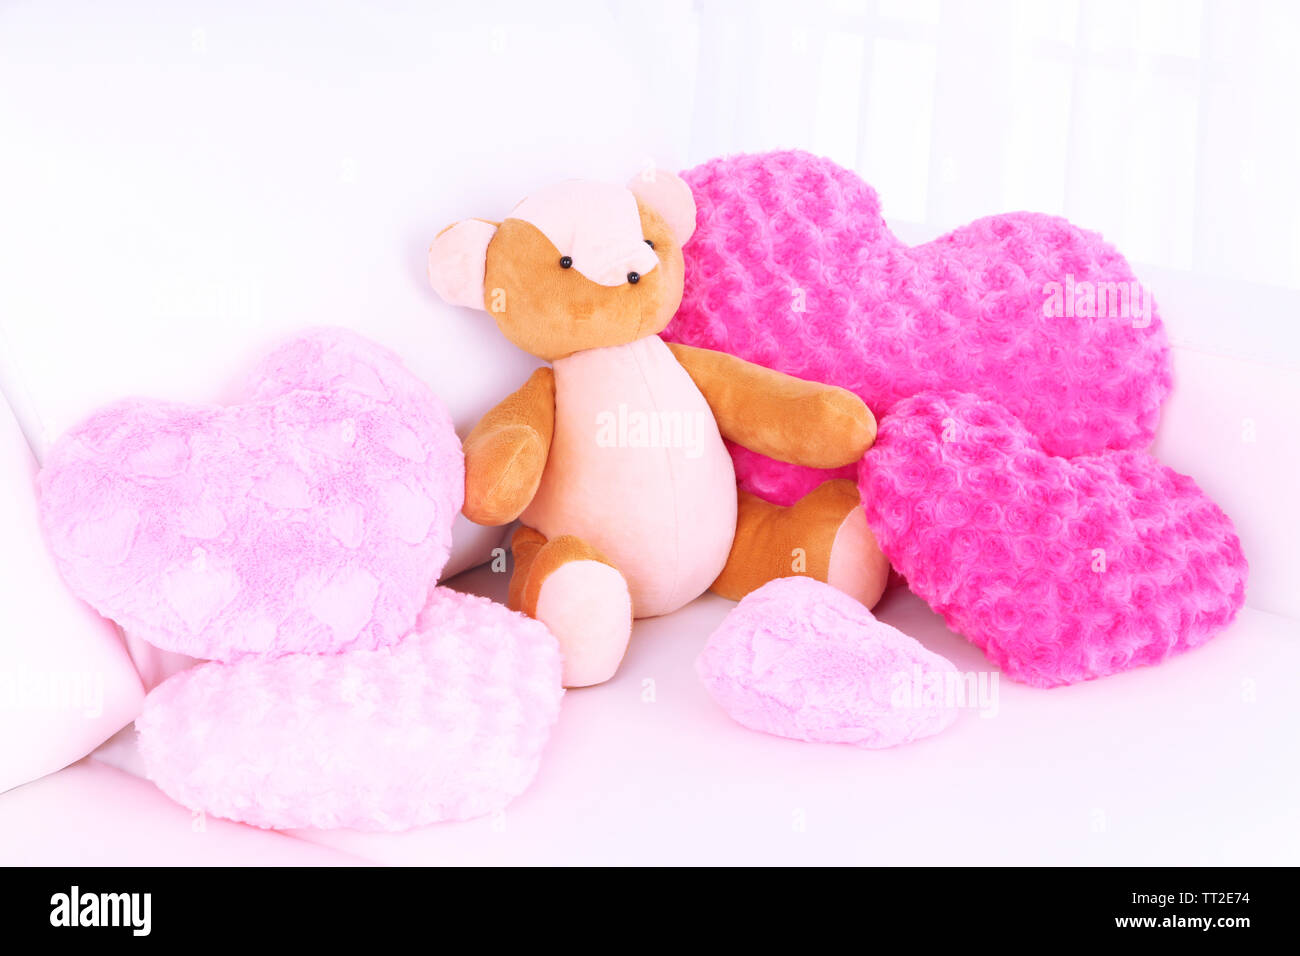 Bear toy with pillows on sofa - Stock Image